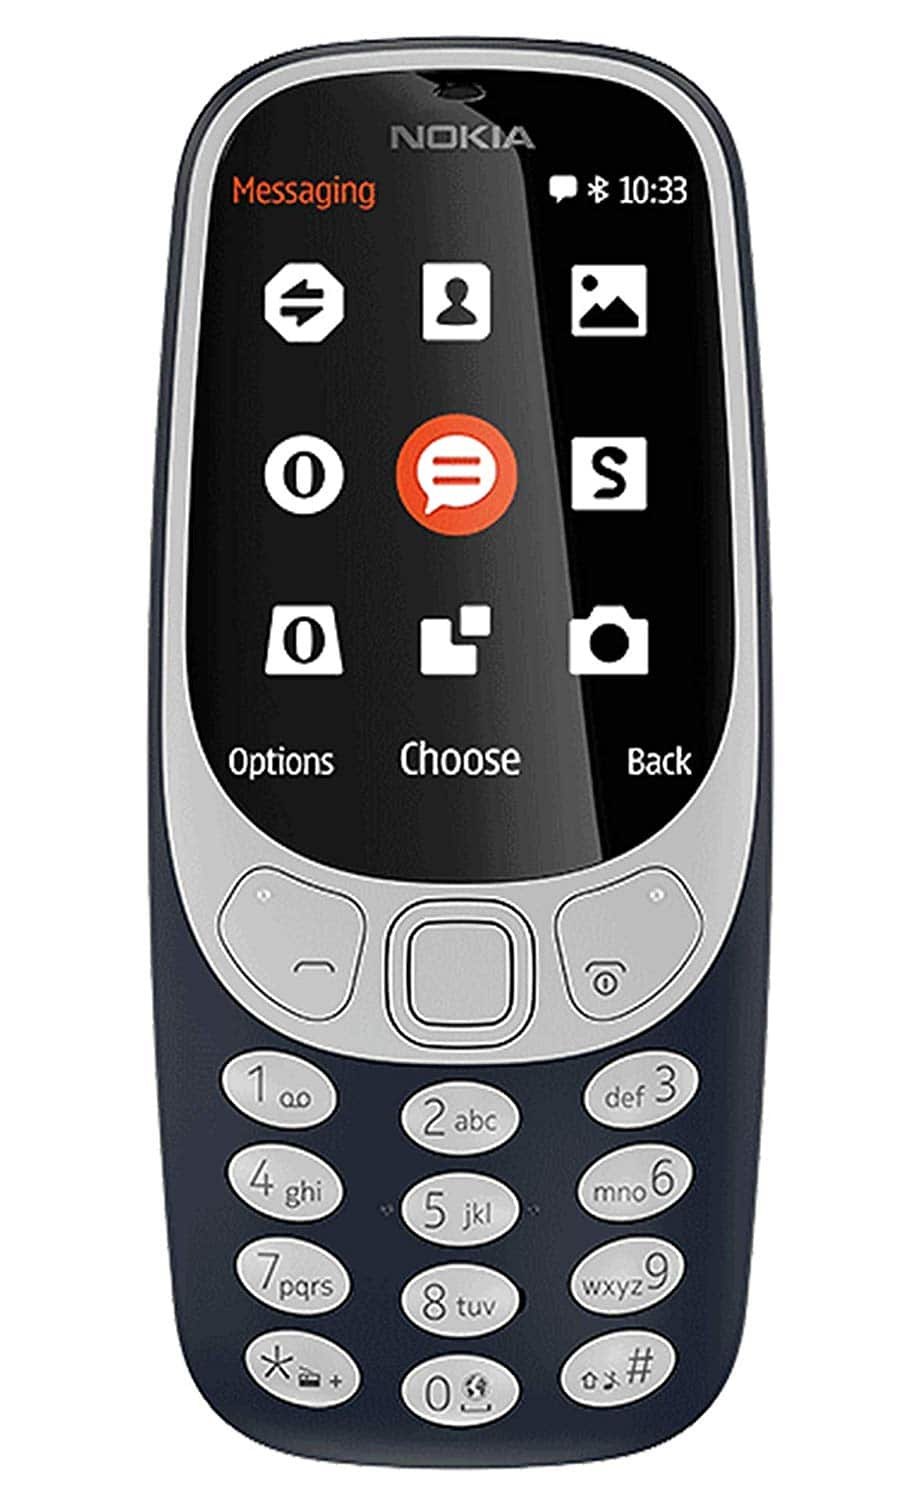 """nokia 3310ミニマリスト電話」width = """"235"""" height = """"391"""" srcset = """"https://www.budgetsaresexy.com/images/nokia-3310-minimalist-phone.jpg 900w、https://www.budgetsaresexy.com /images/nokia-3310-minimalist-phone-180x300.jpg 180w、https://www.budgetsaresexy.com/images/nokia-3310-minimalist-phone-768x1280.jpg 768w、https://www.budgetsaresexy.com /images/nokia-3310-minimalist-phone-614x1024.jpg 614w """"size =""""(最大幅:235px)100vw、235px"""